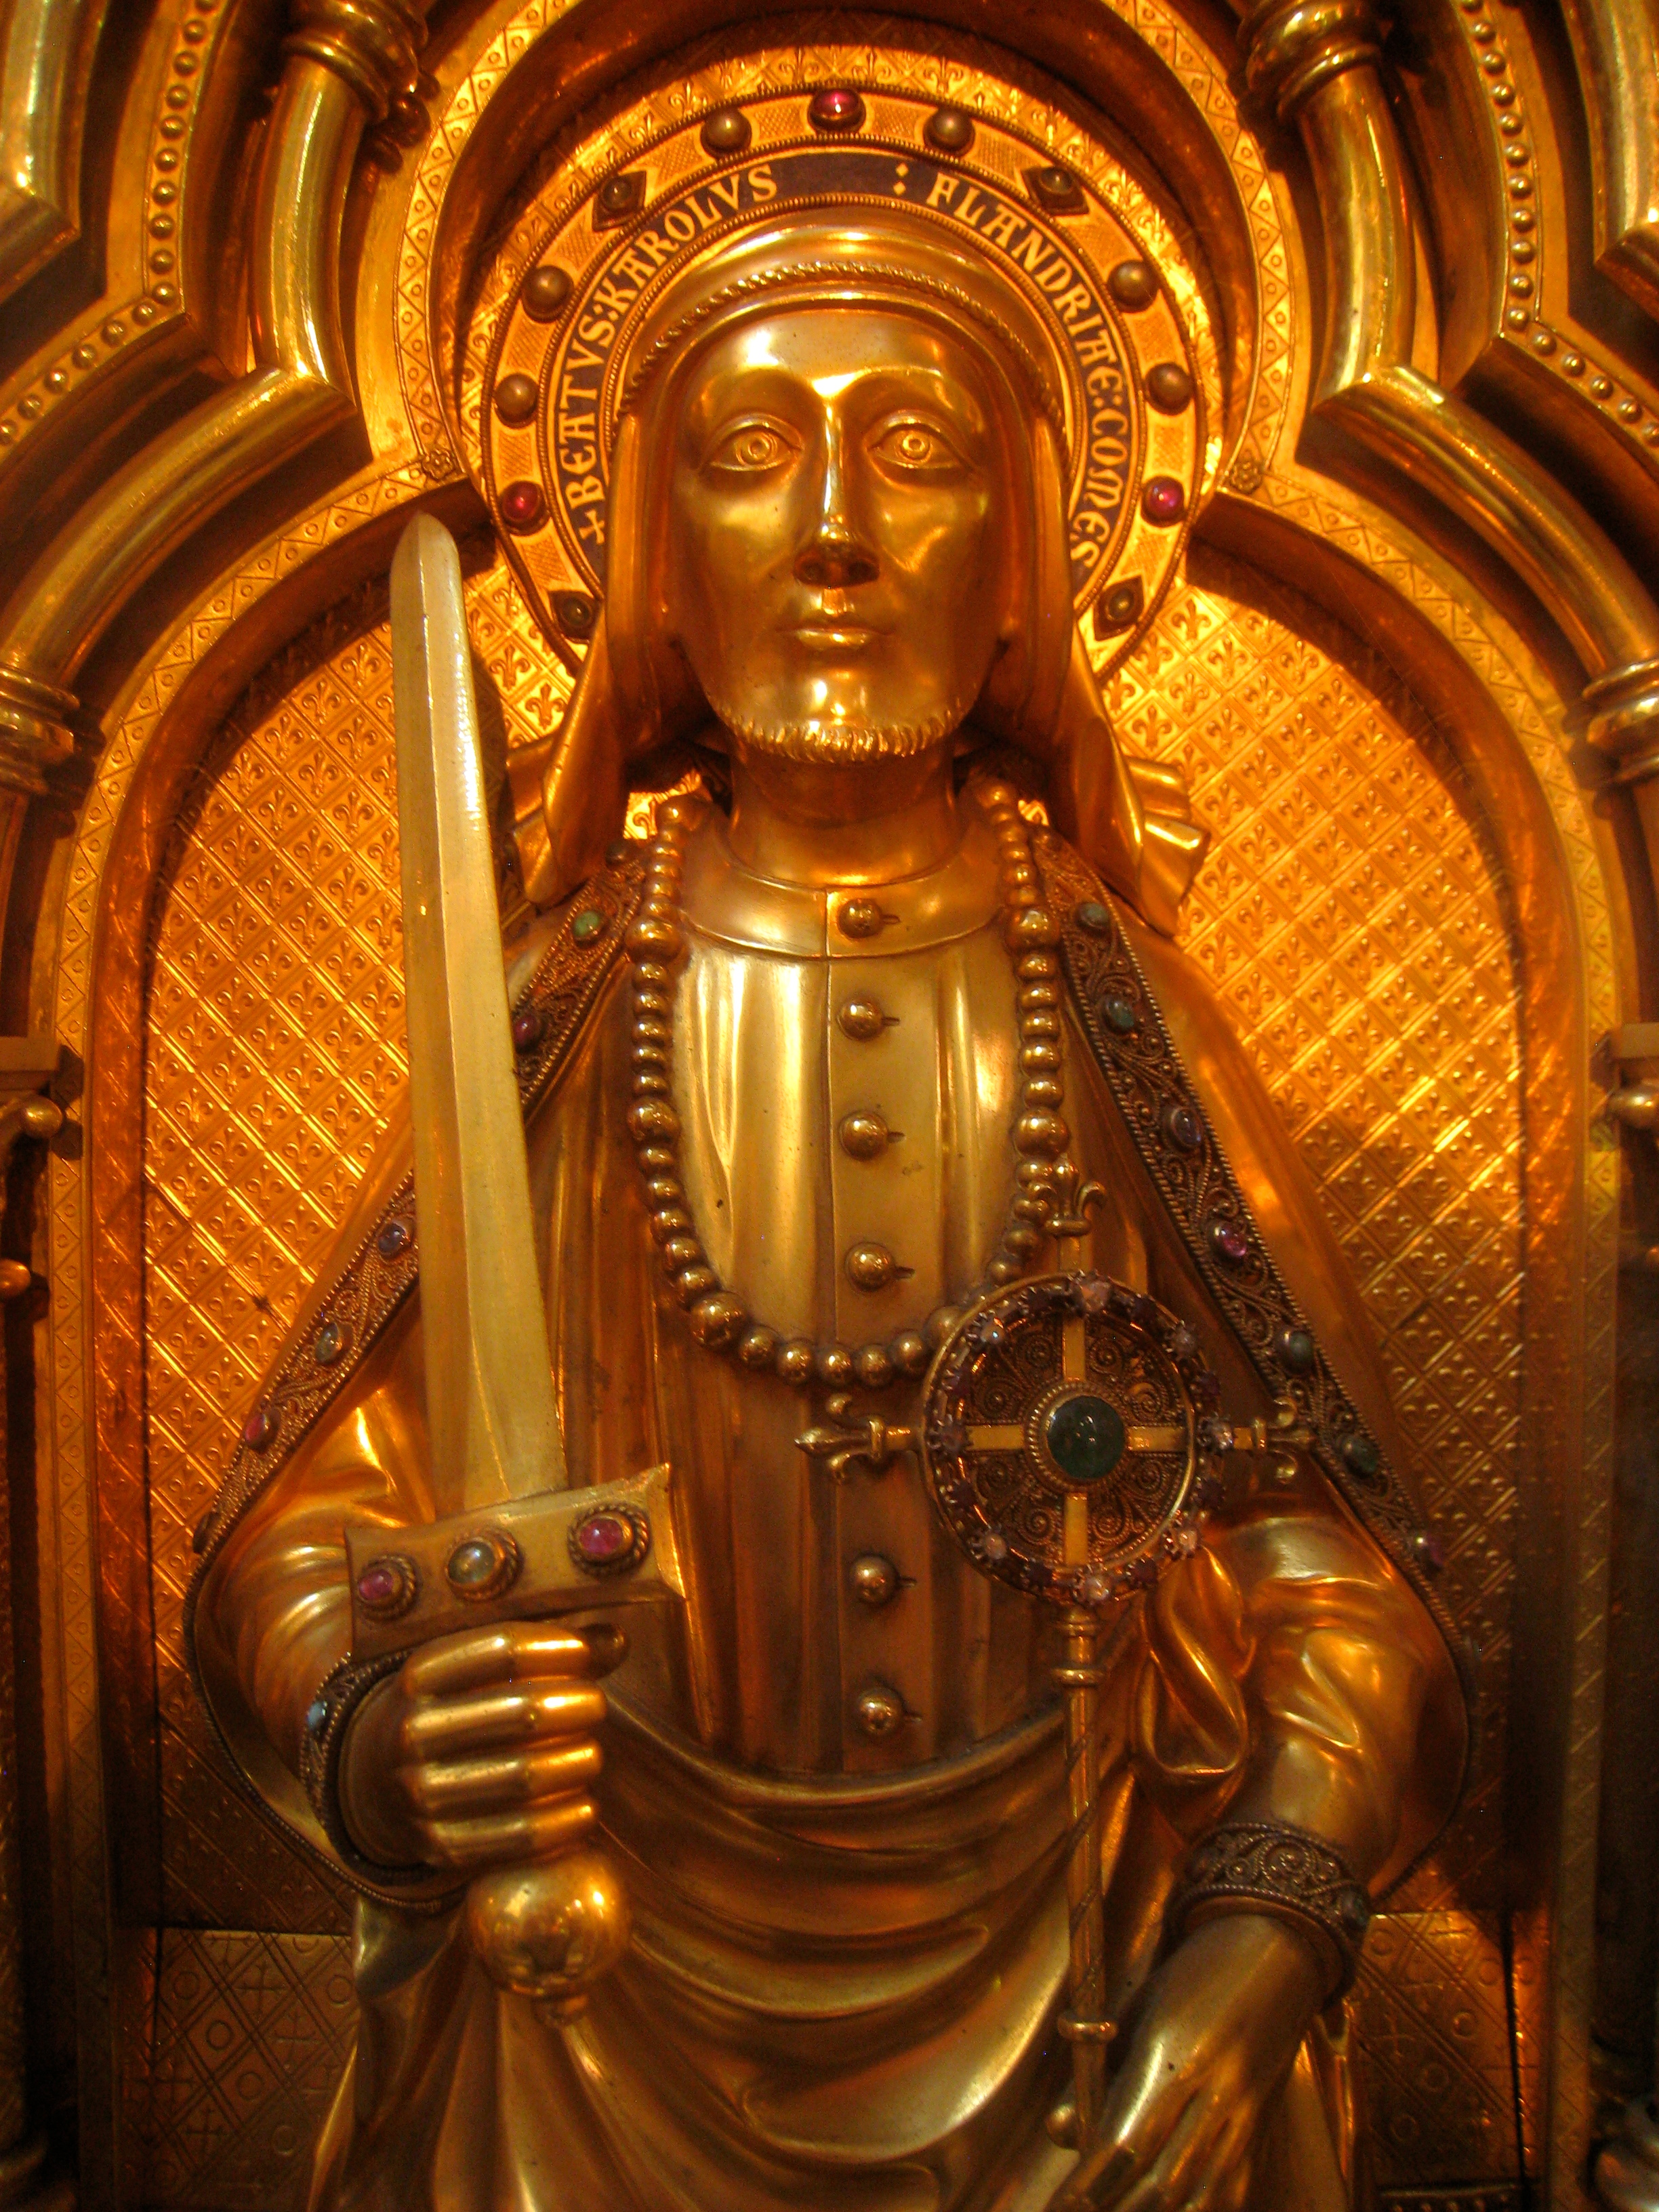 Charles I on his reliquary in the Sint-Salvatorskathedraal, Bruges, Belgium. By Daderot, Public Domain,  https://commons.wikimedia.org/w/index.php?curid=11991731